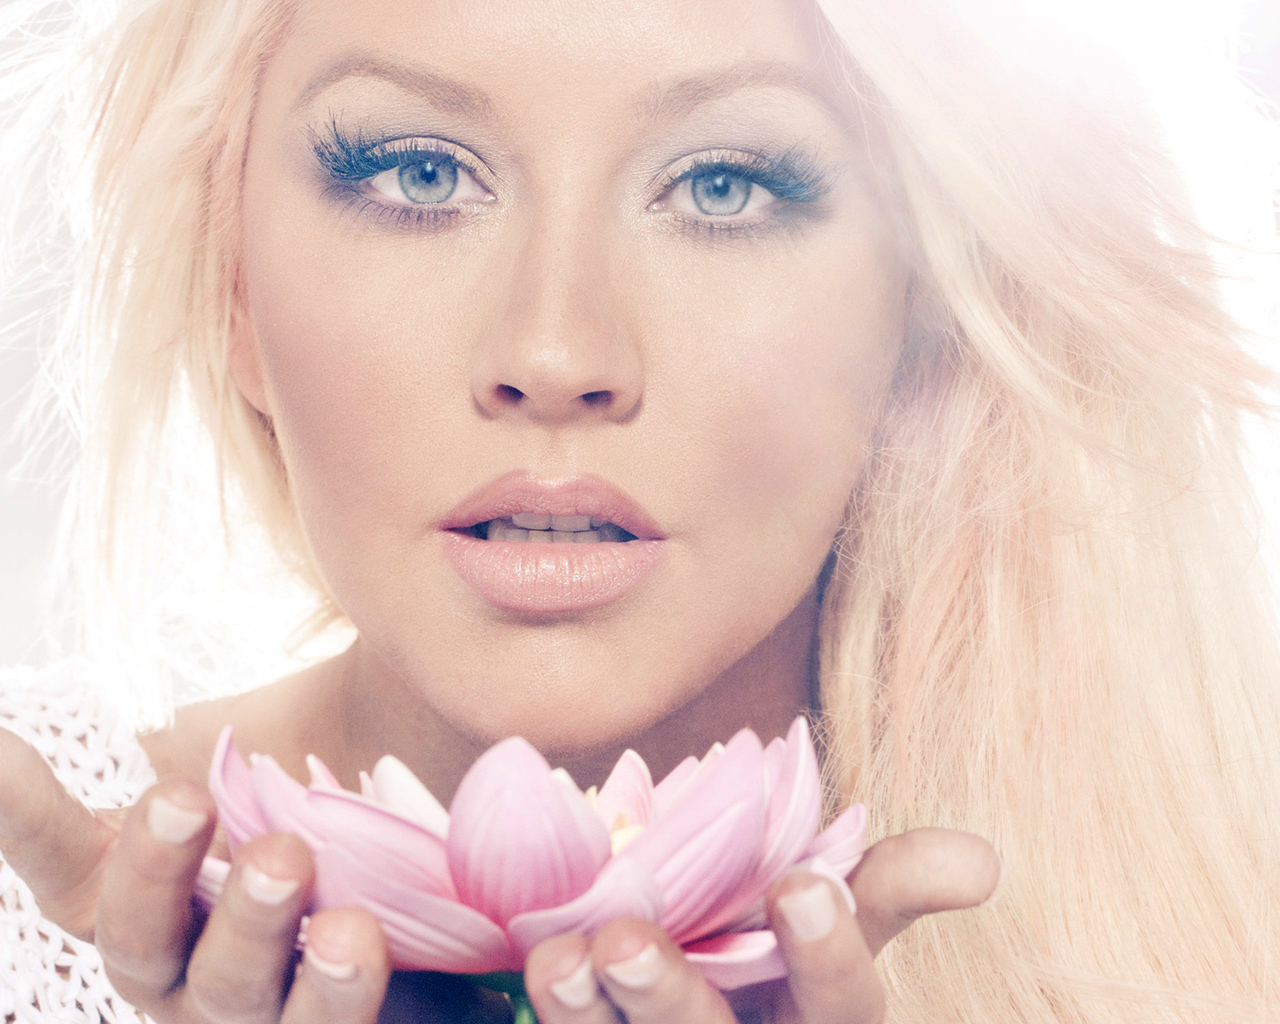 Christina Aguilera with a Lotus Flower